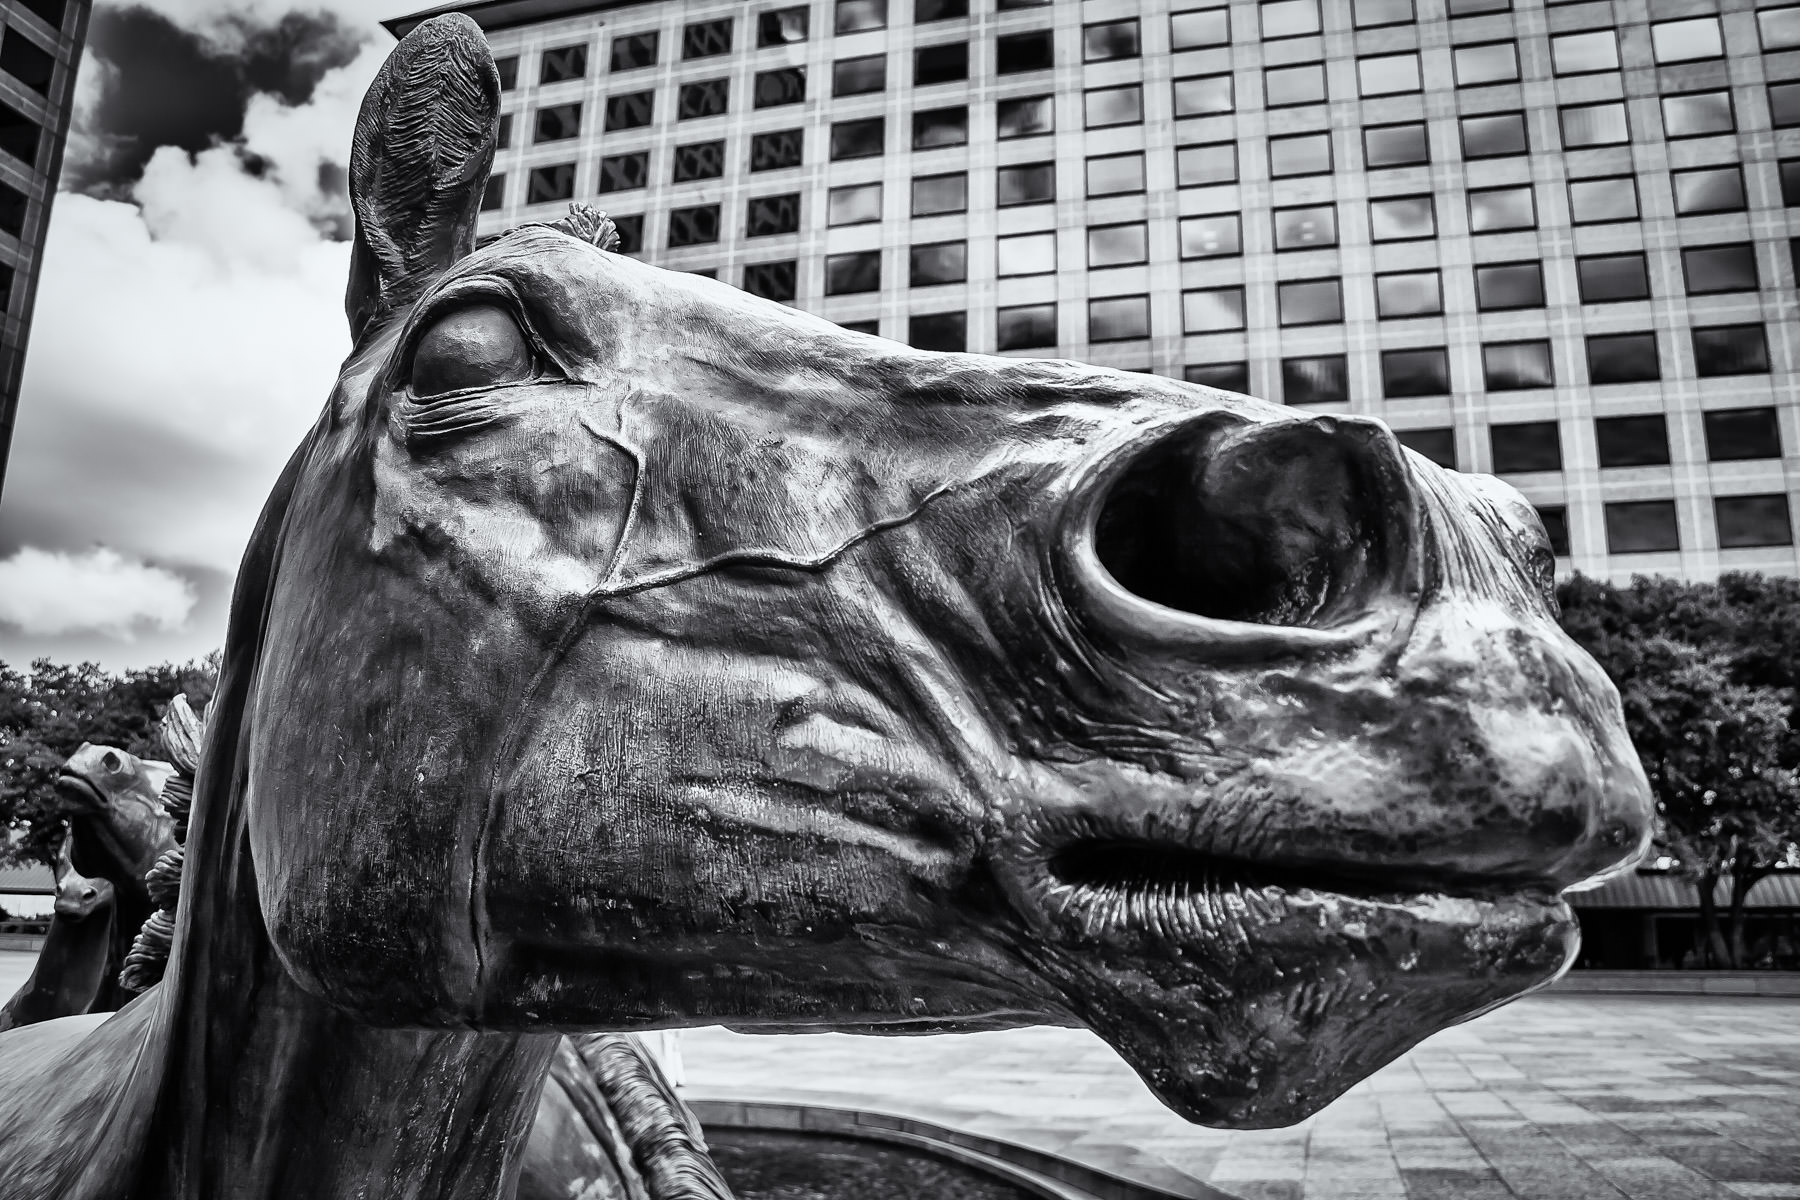 Detail of one of the constituent sculptures of The Mustangs at Las Colinas, Irving, Texas.